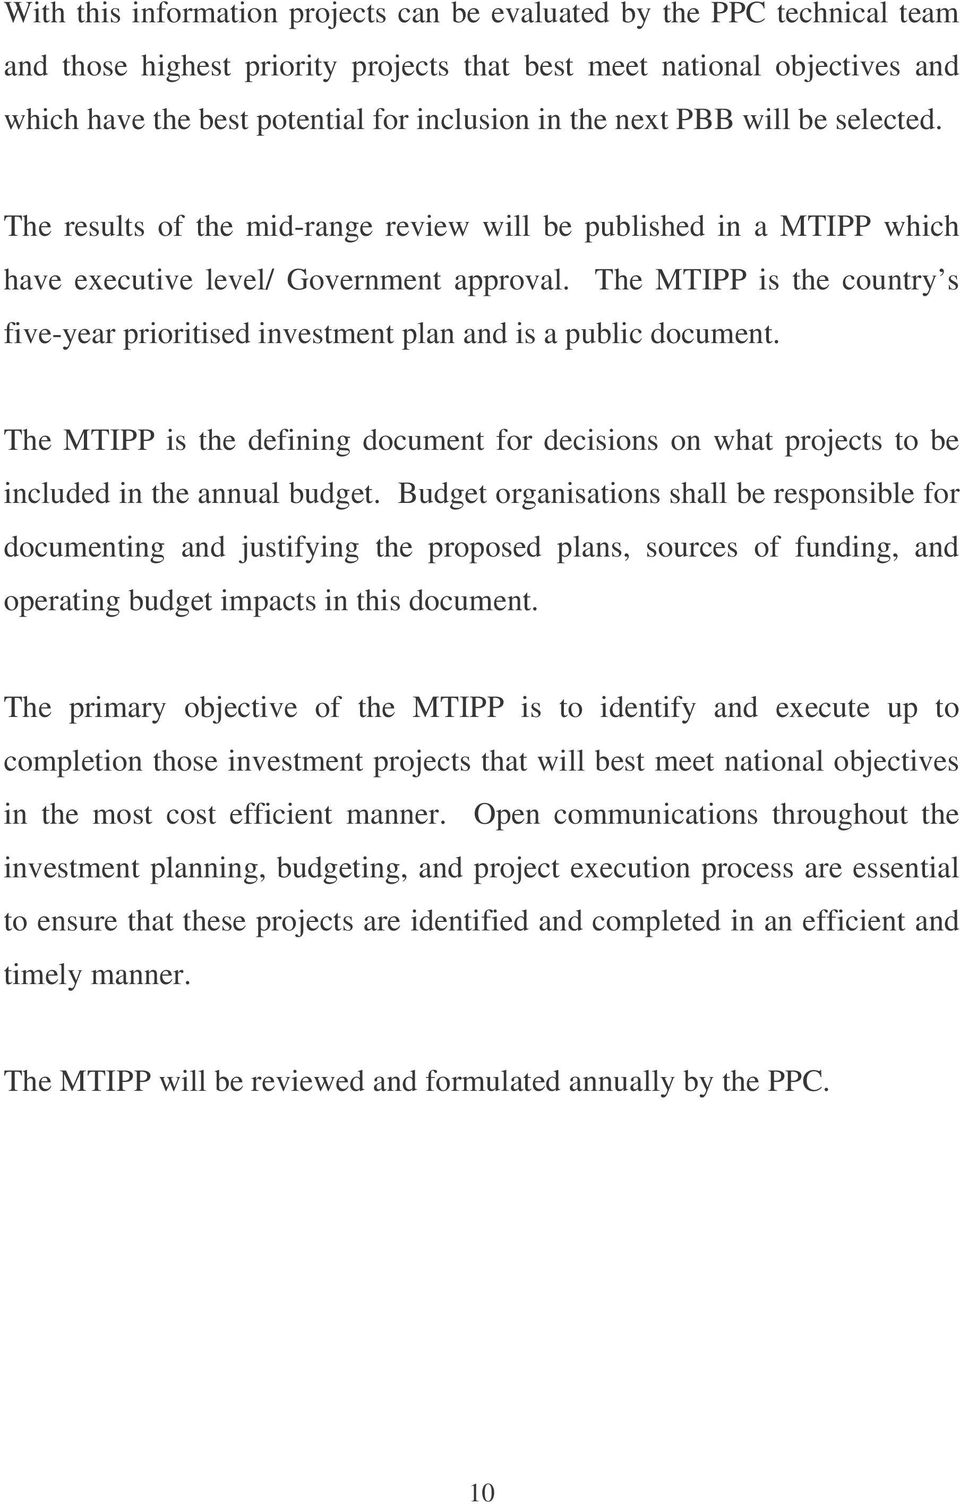 The MTIPP is the country s five-year prioritised investment plan and is a public document. The MTIPP is the defining document for decisions on what projects to be included in the annual budget.